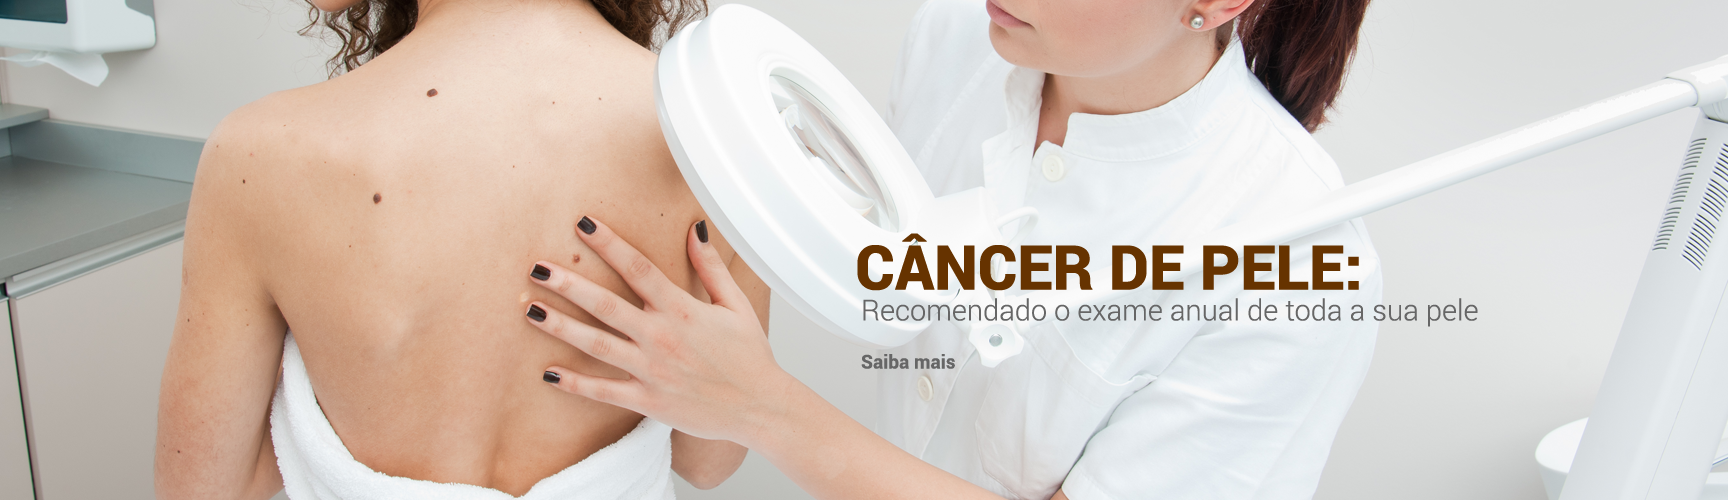 banner02--cancer-de-pele